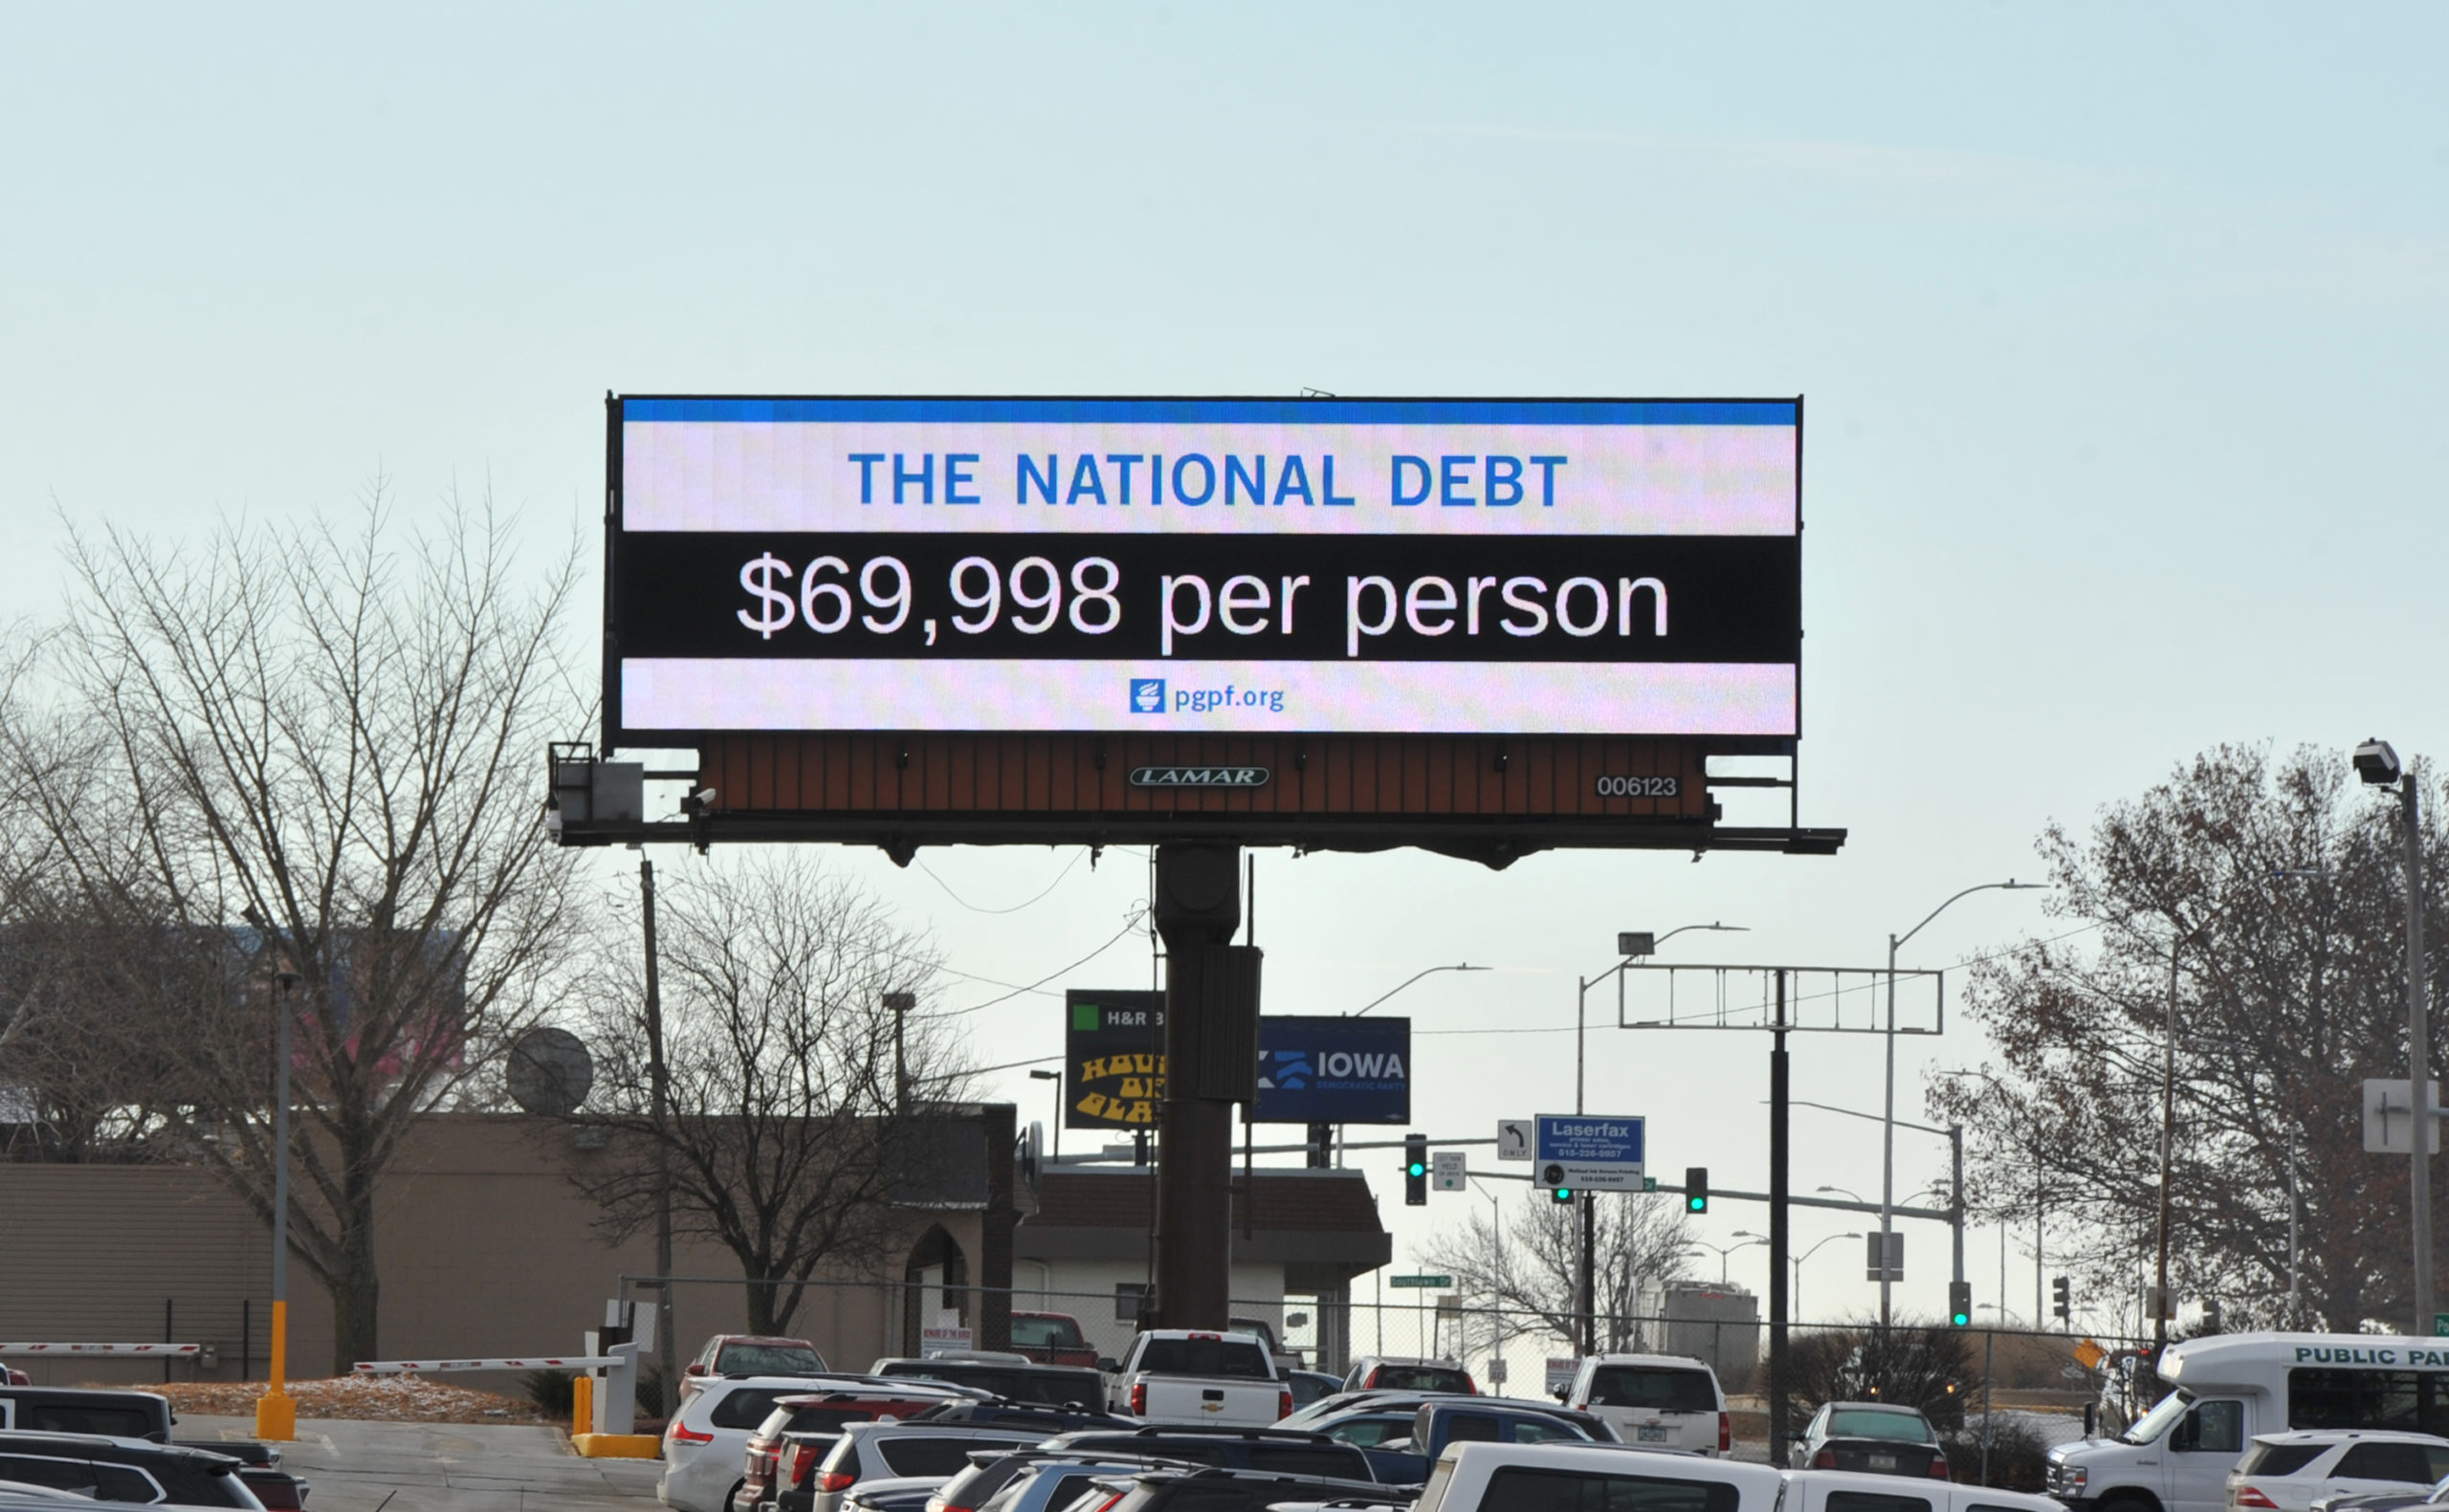 DES MOINES, IA - DECEMBER 18: A Peterson Foundation billboard displaying the national debt is pictured along Fleur Drive on December 18, 2019 in Des Moines, Iowa. (Steven Pope/Getty Images for PGPF)